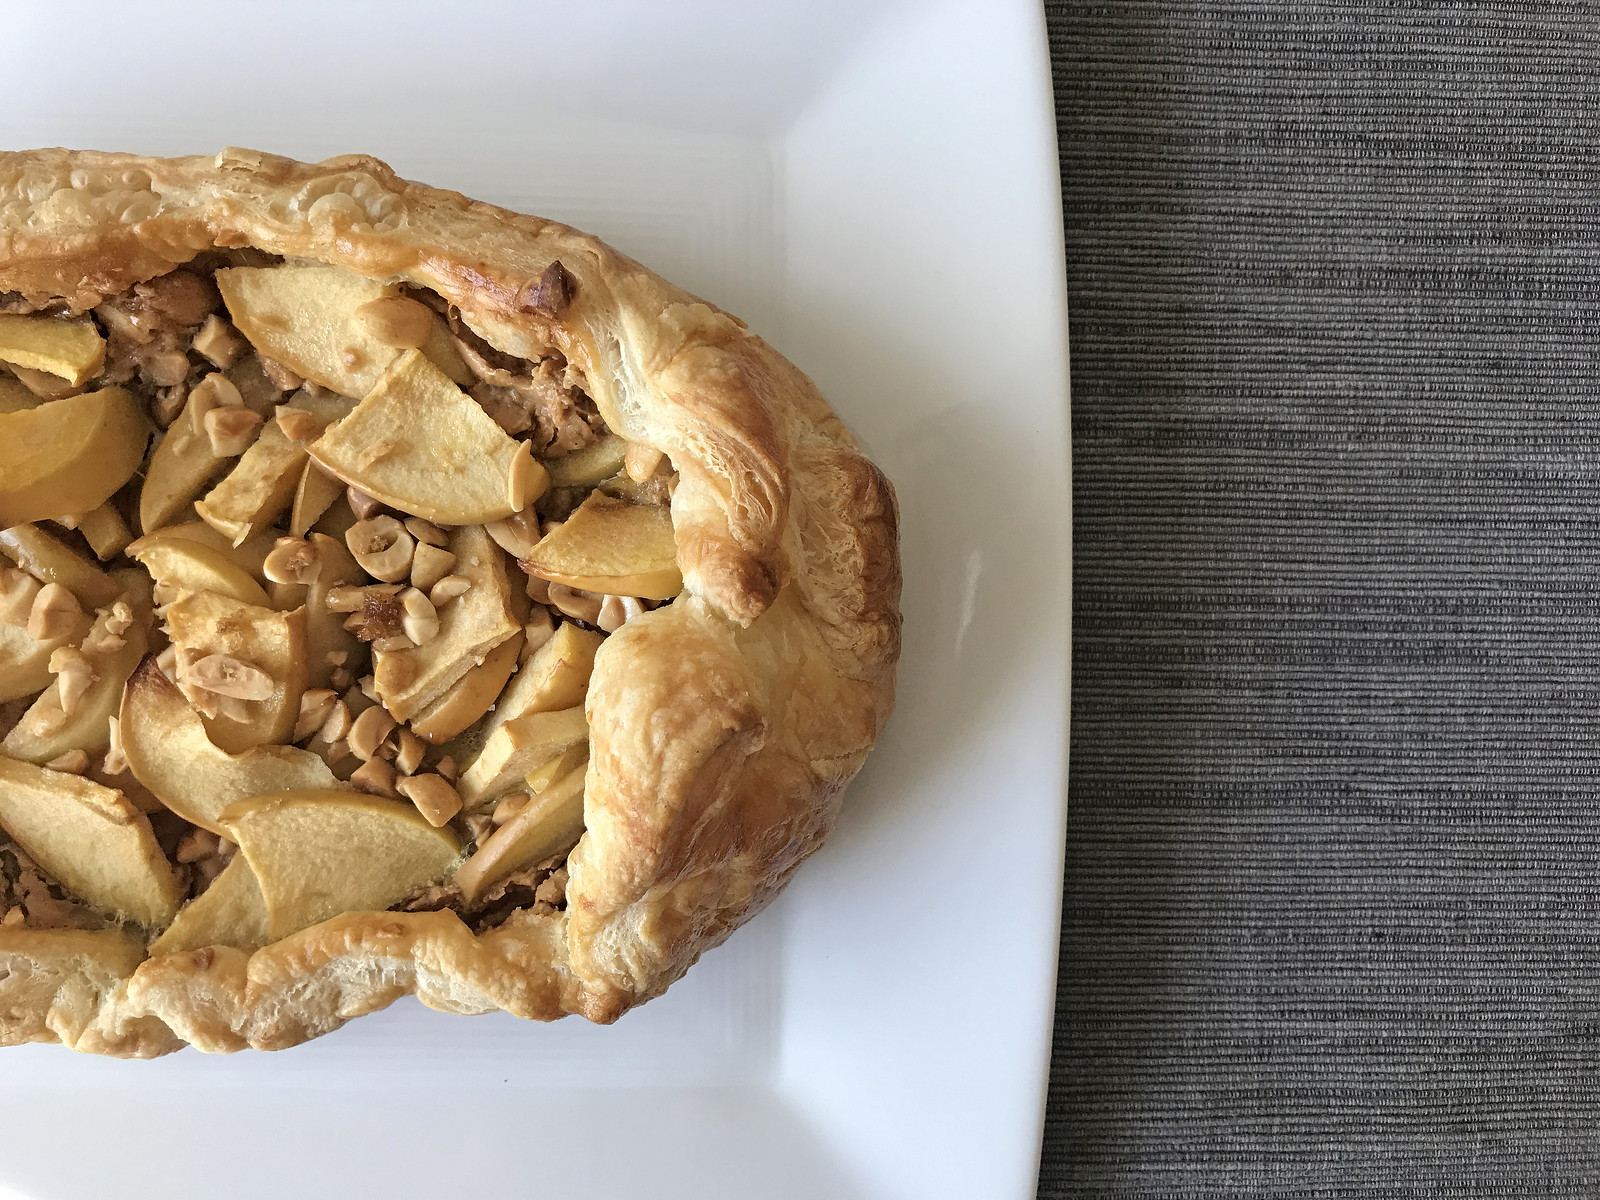 Apple and peanut butter puff pastry tart